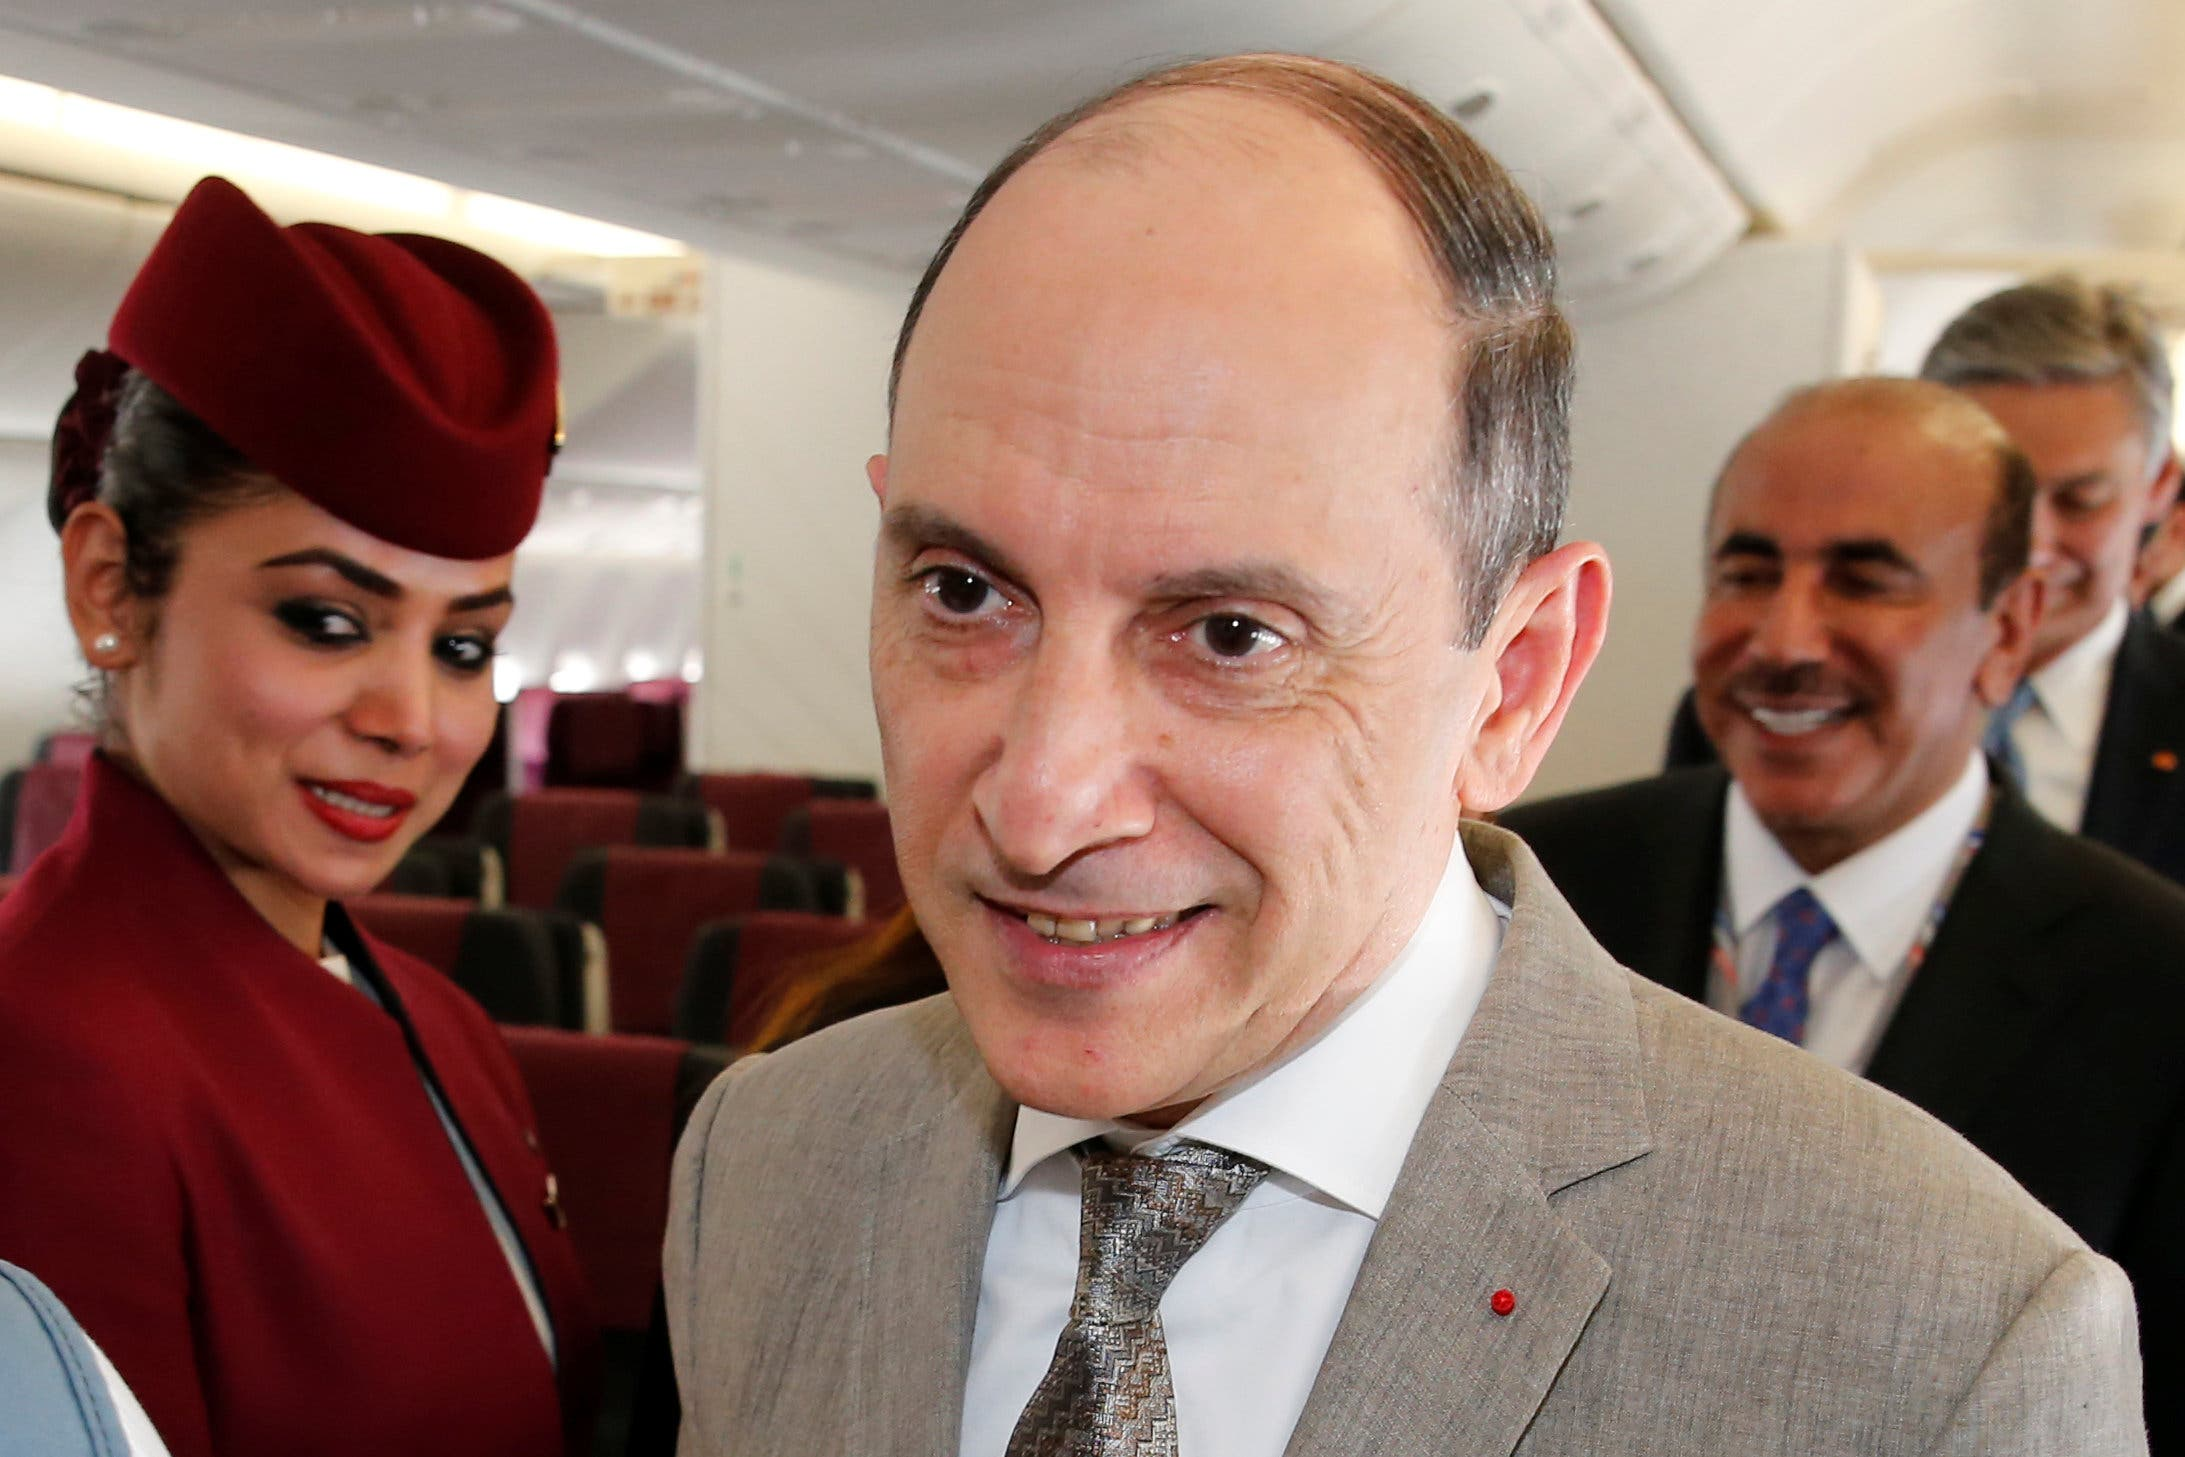 Qatar Airways Chief Executive Officer Akbar Al Baker is seen during the 52nd Paris Air Show at Le Bourget airport near Paris, France, June 19, 2017